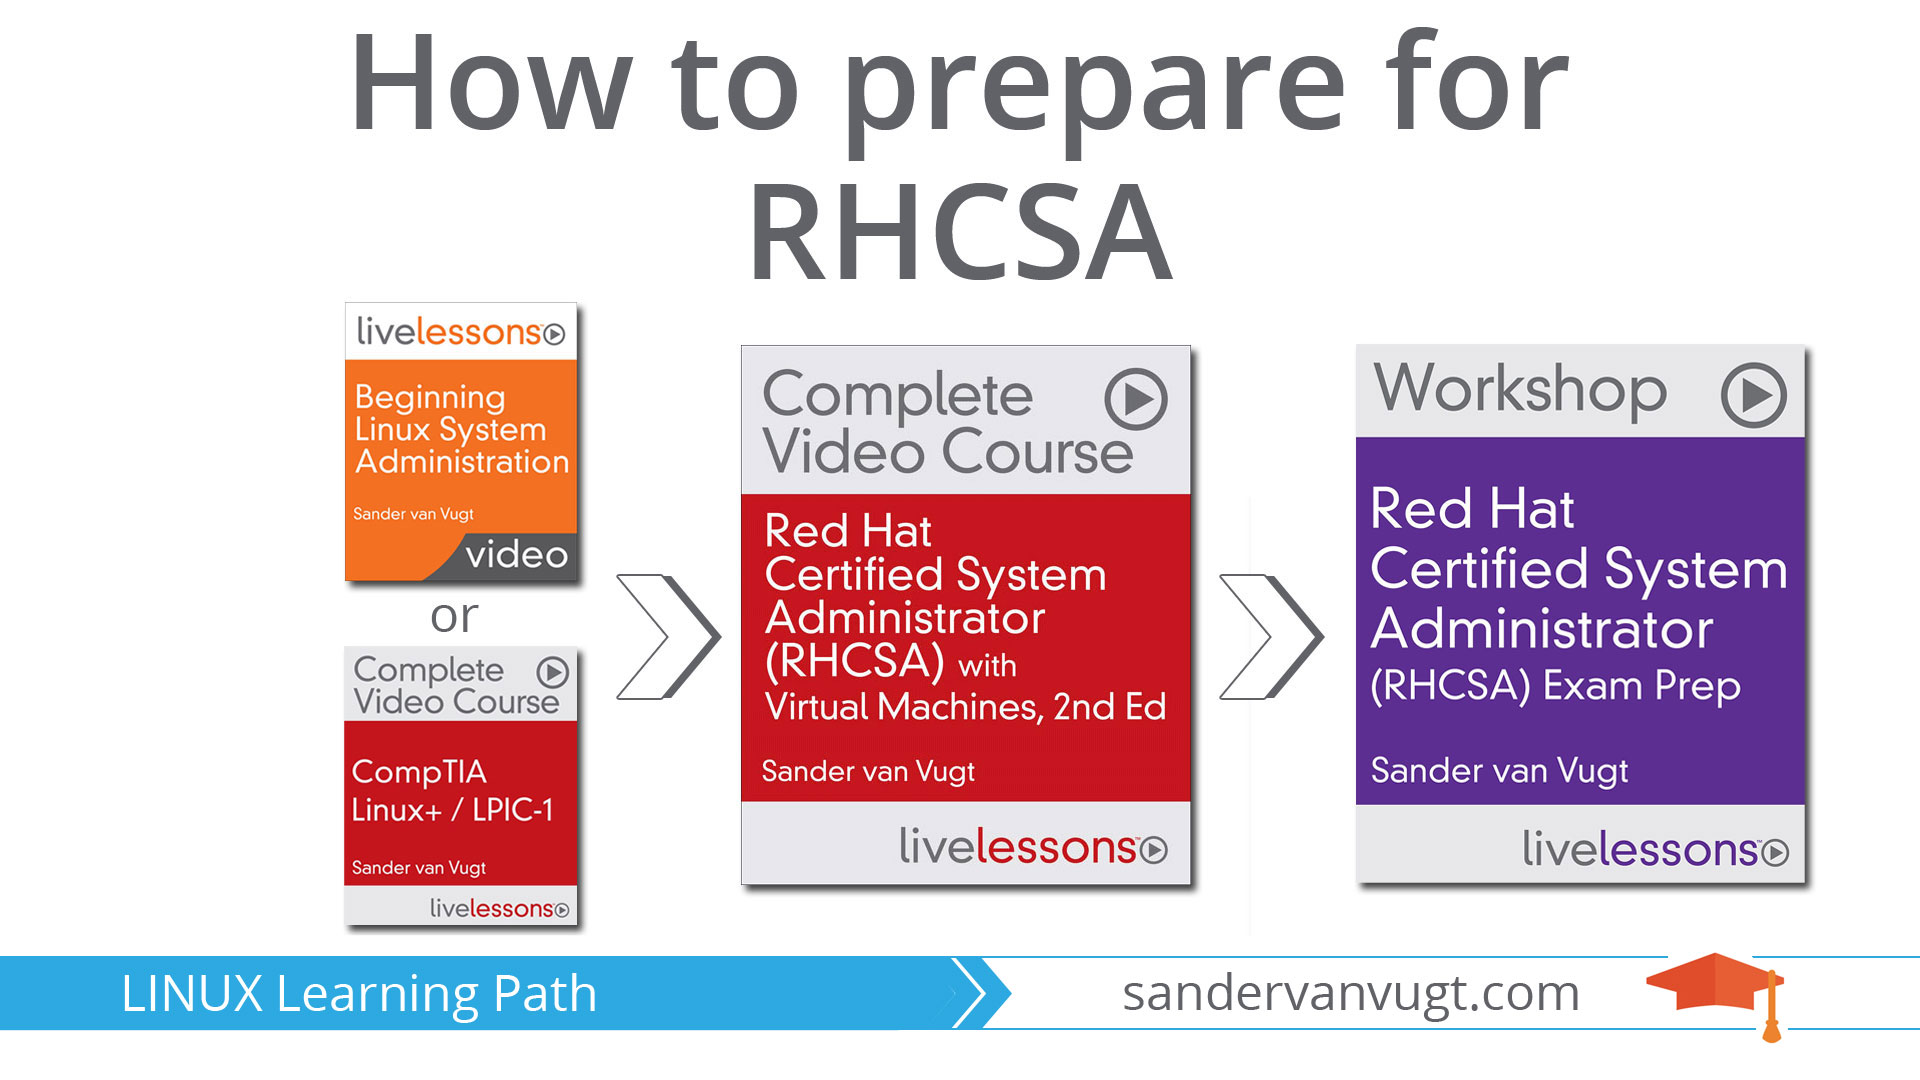 Preparing for RHCSA – This is how to become RHCSA